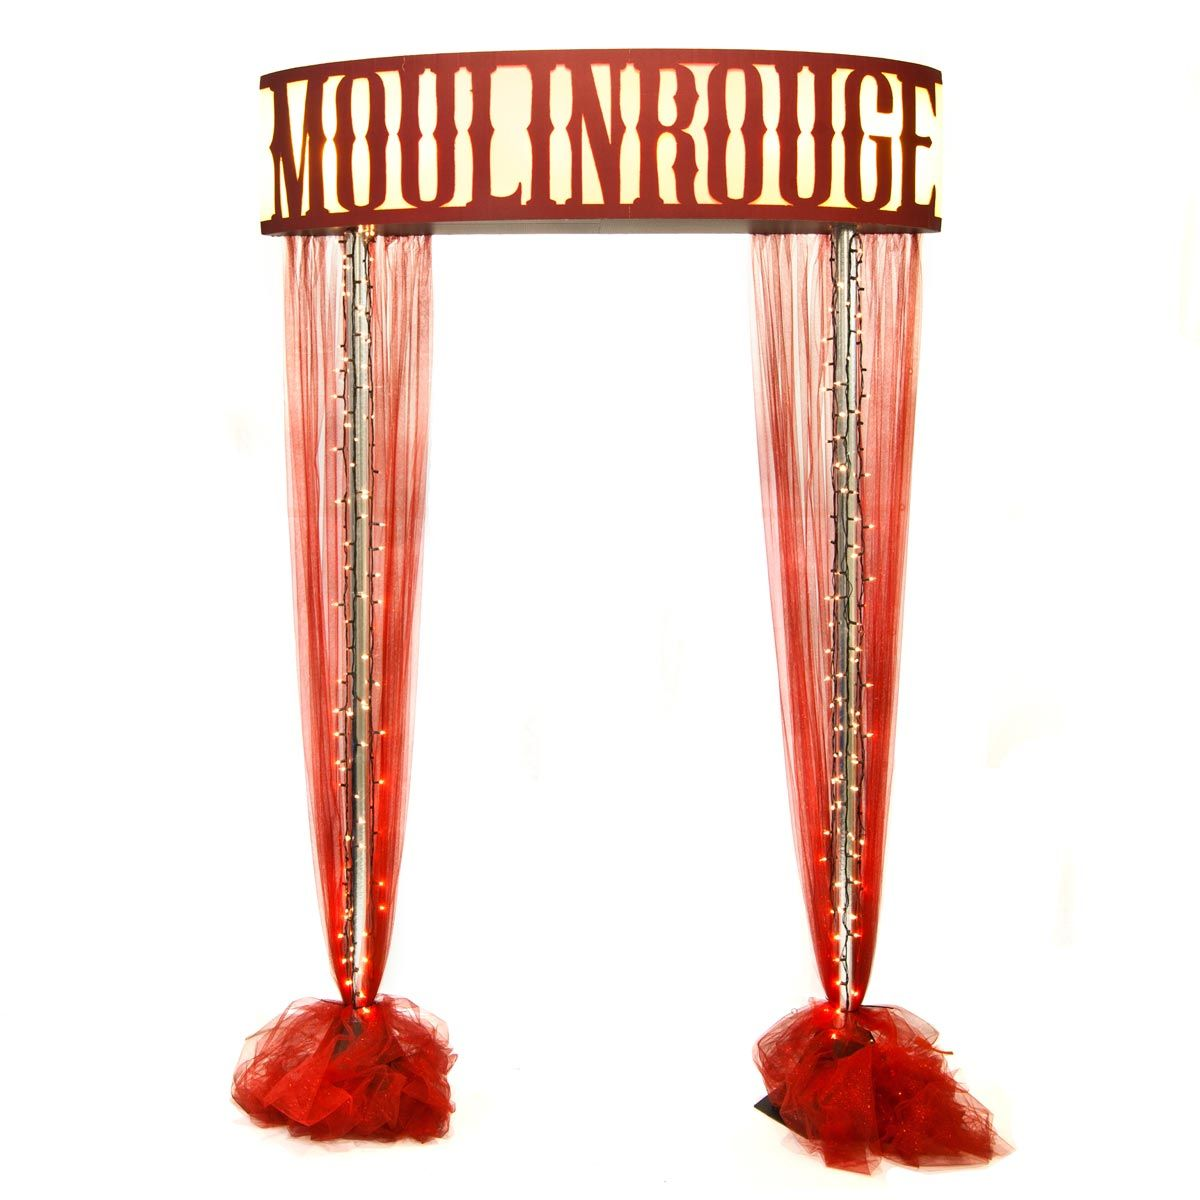 Moulin rouge party moulin rouge party pinterest - Welcome To The Moulin Rouge Arch Kit Party